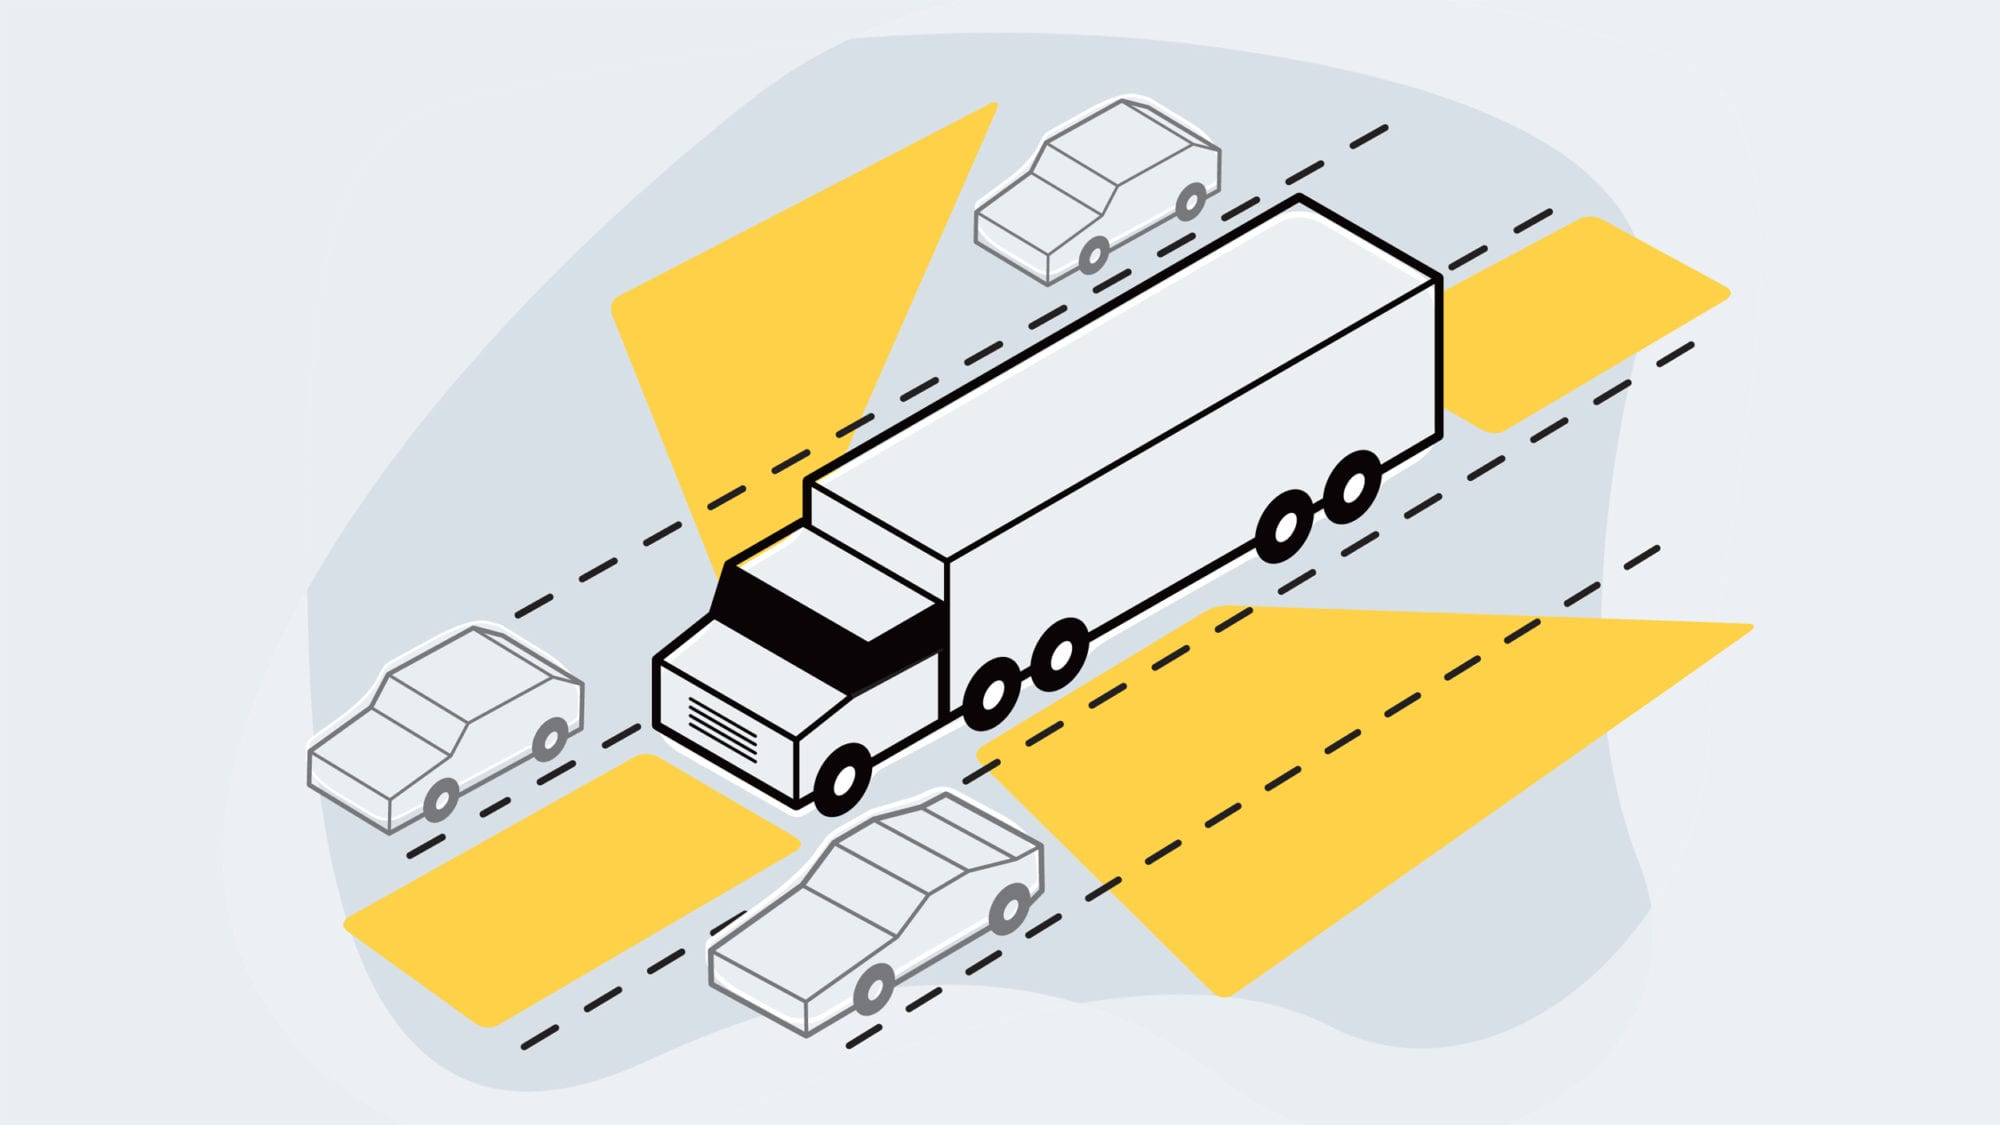 Big Trucks Blind Spots And Road Safety Ama